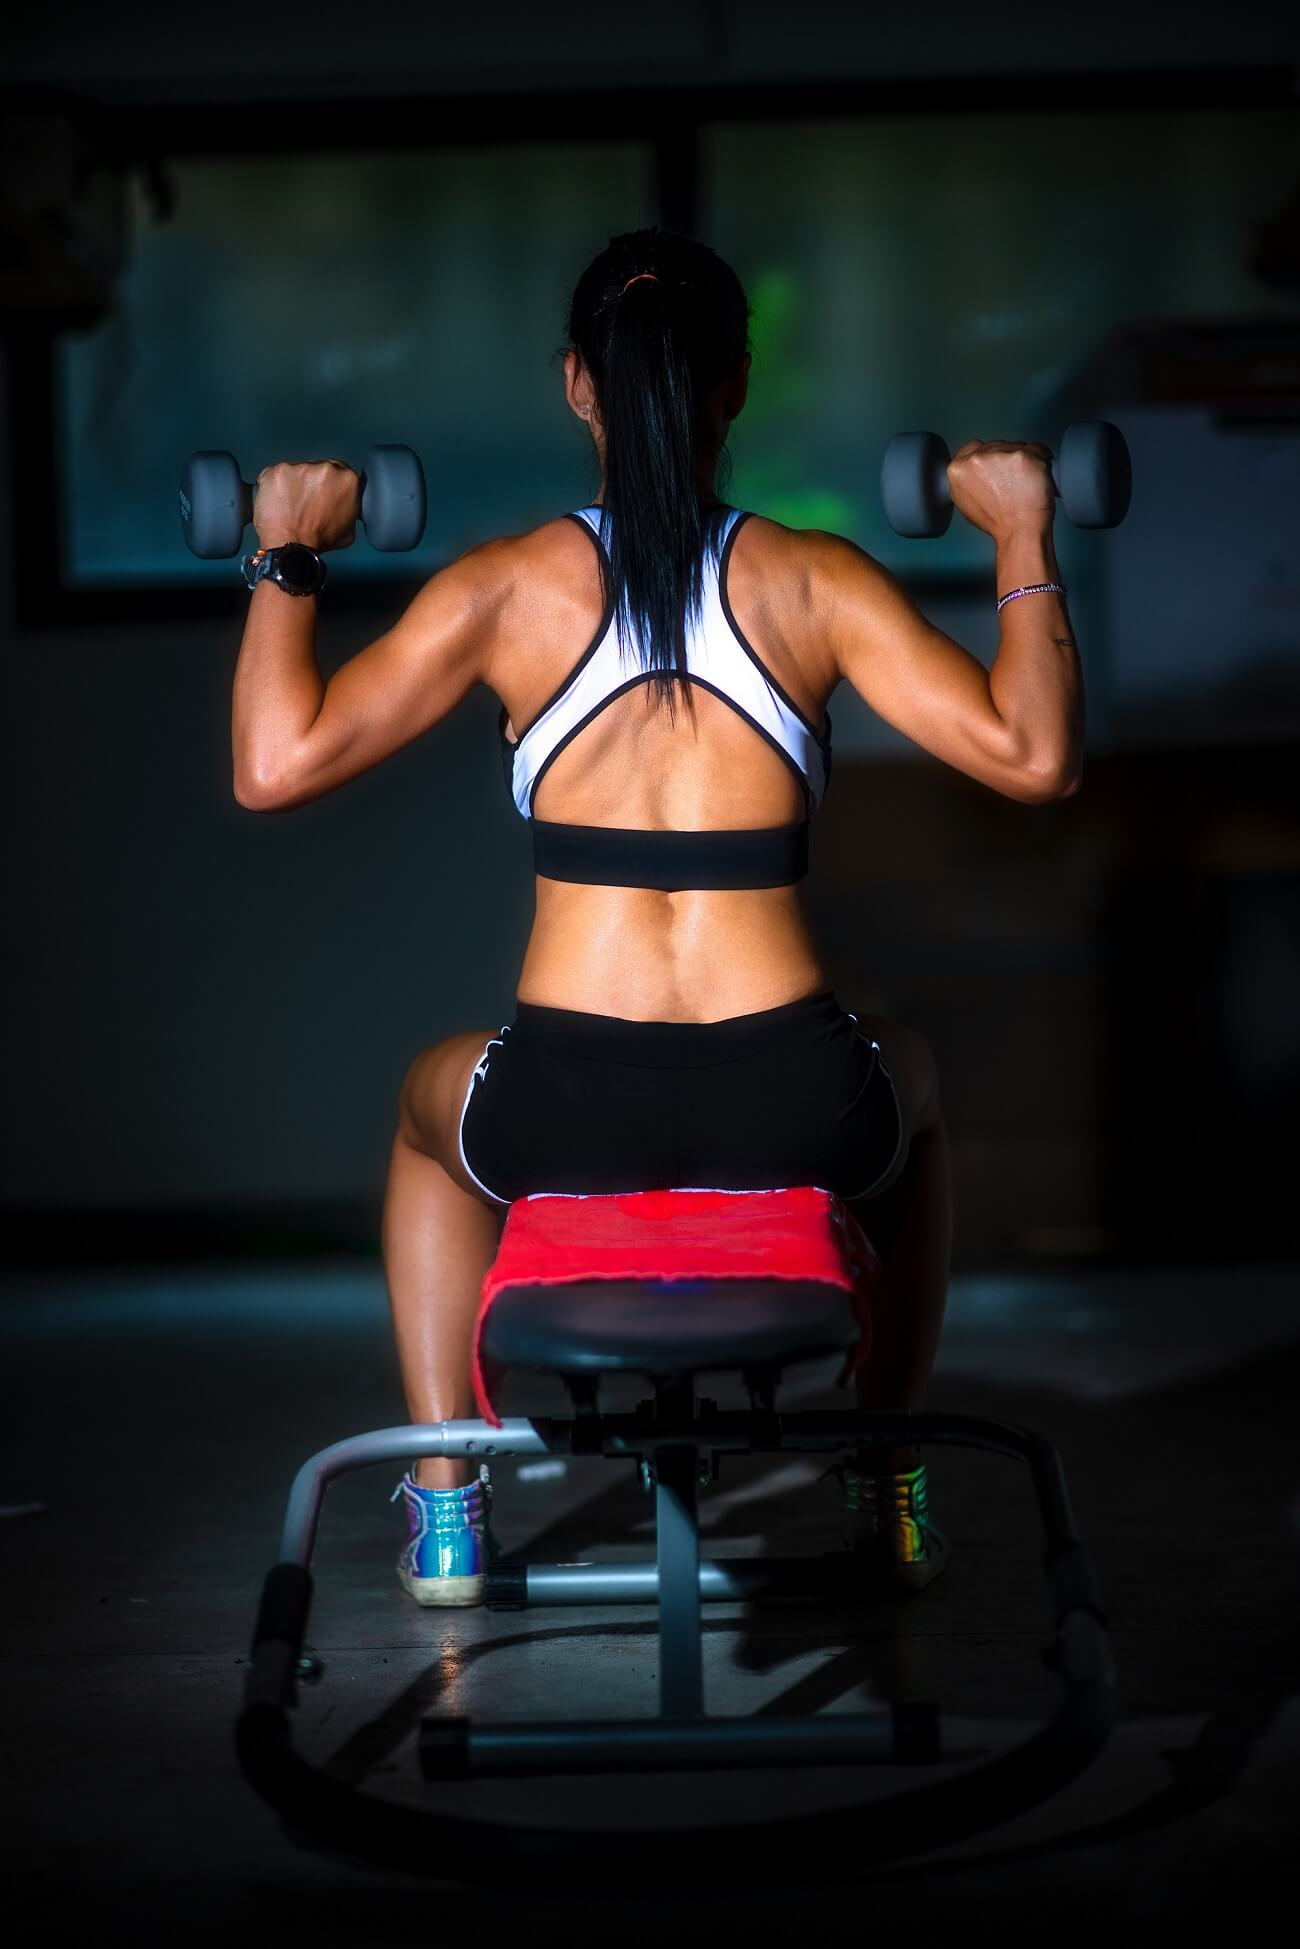 A girl on the bench and weights